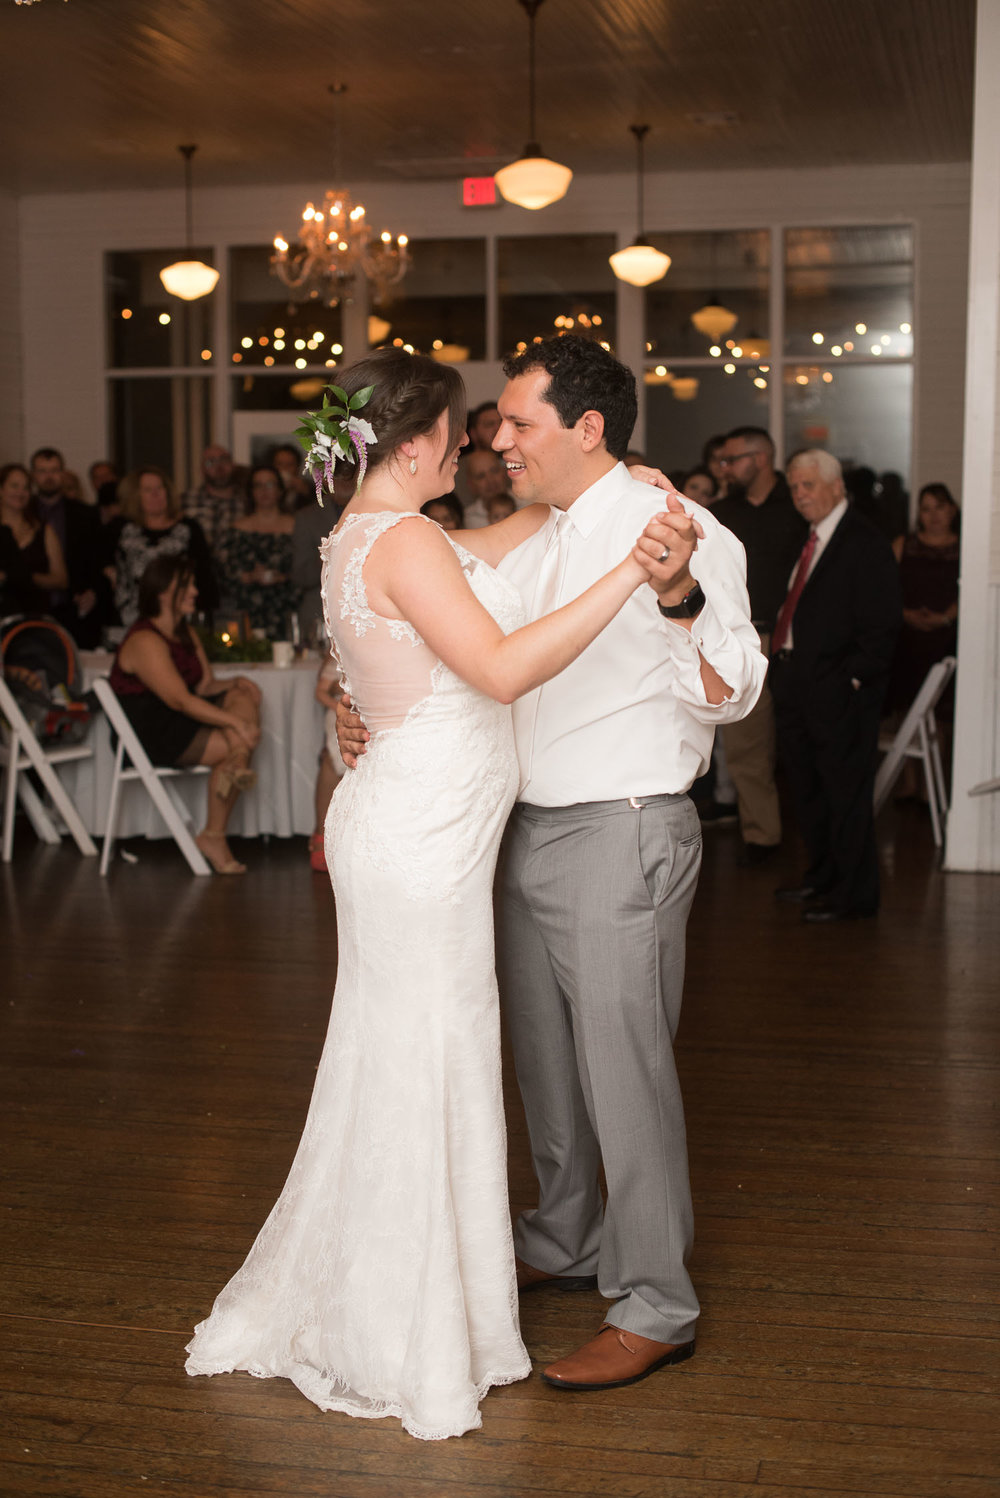 Alex and Austin Wedding Photography at Mercury Hall in Texas-147.jpg